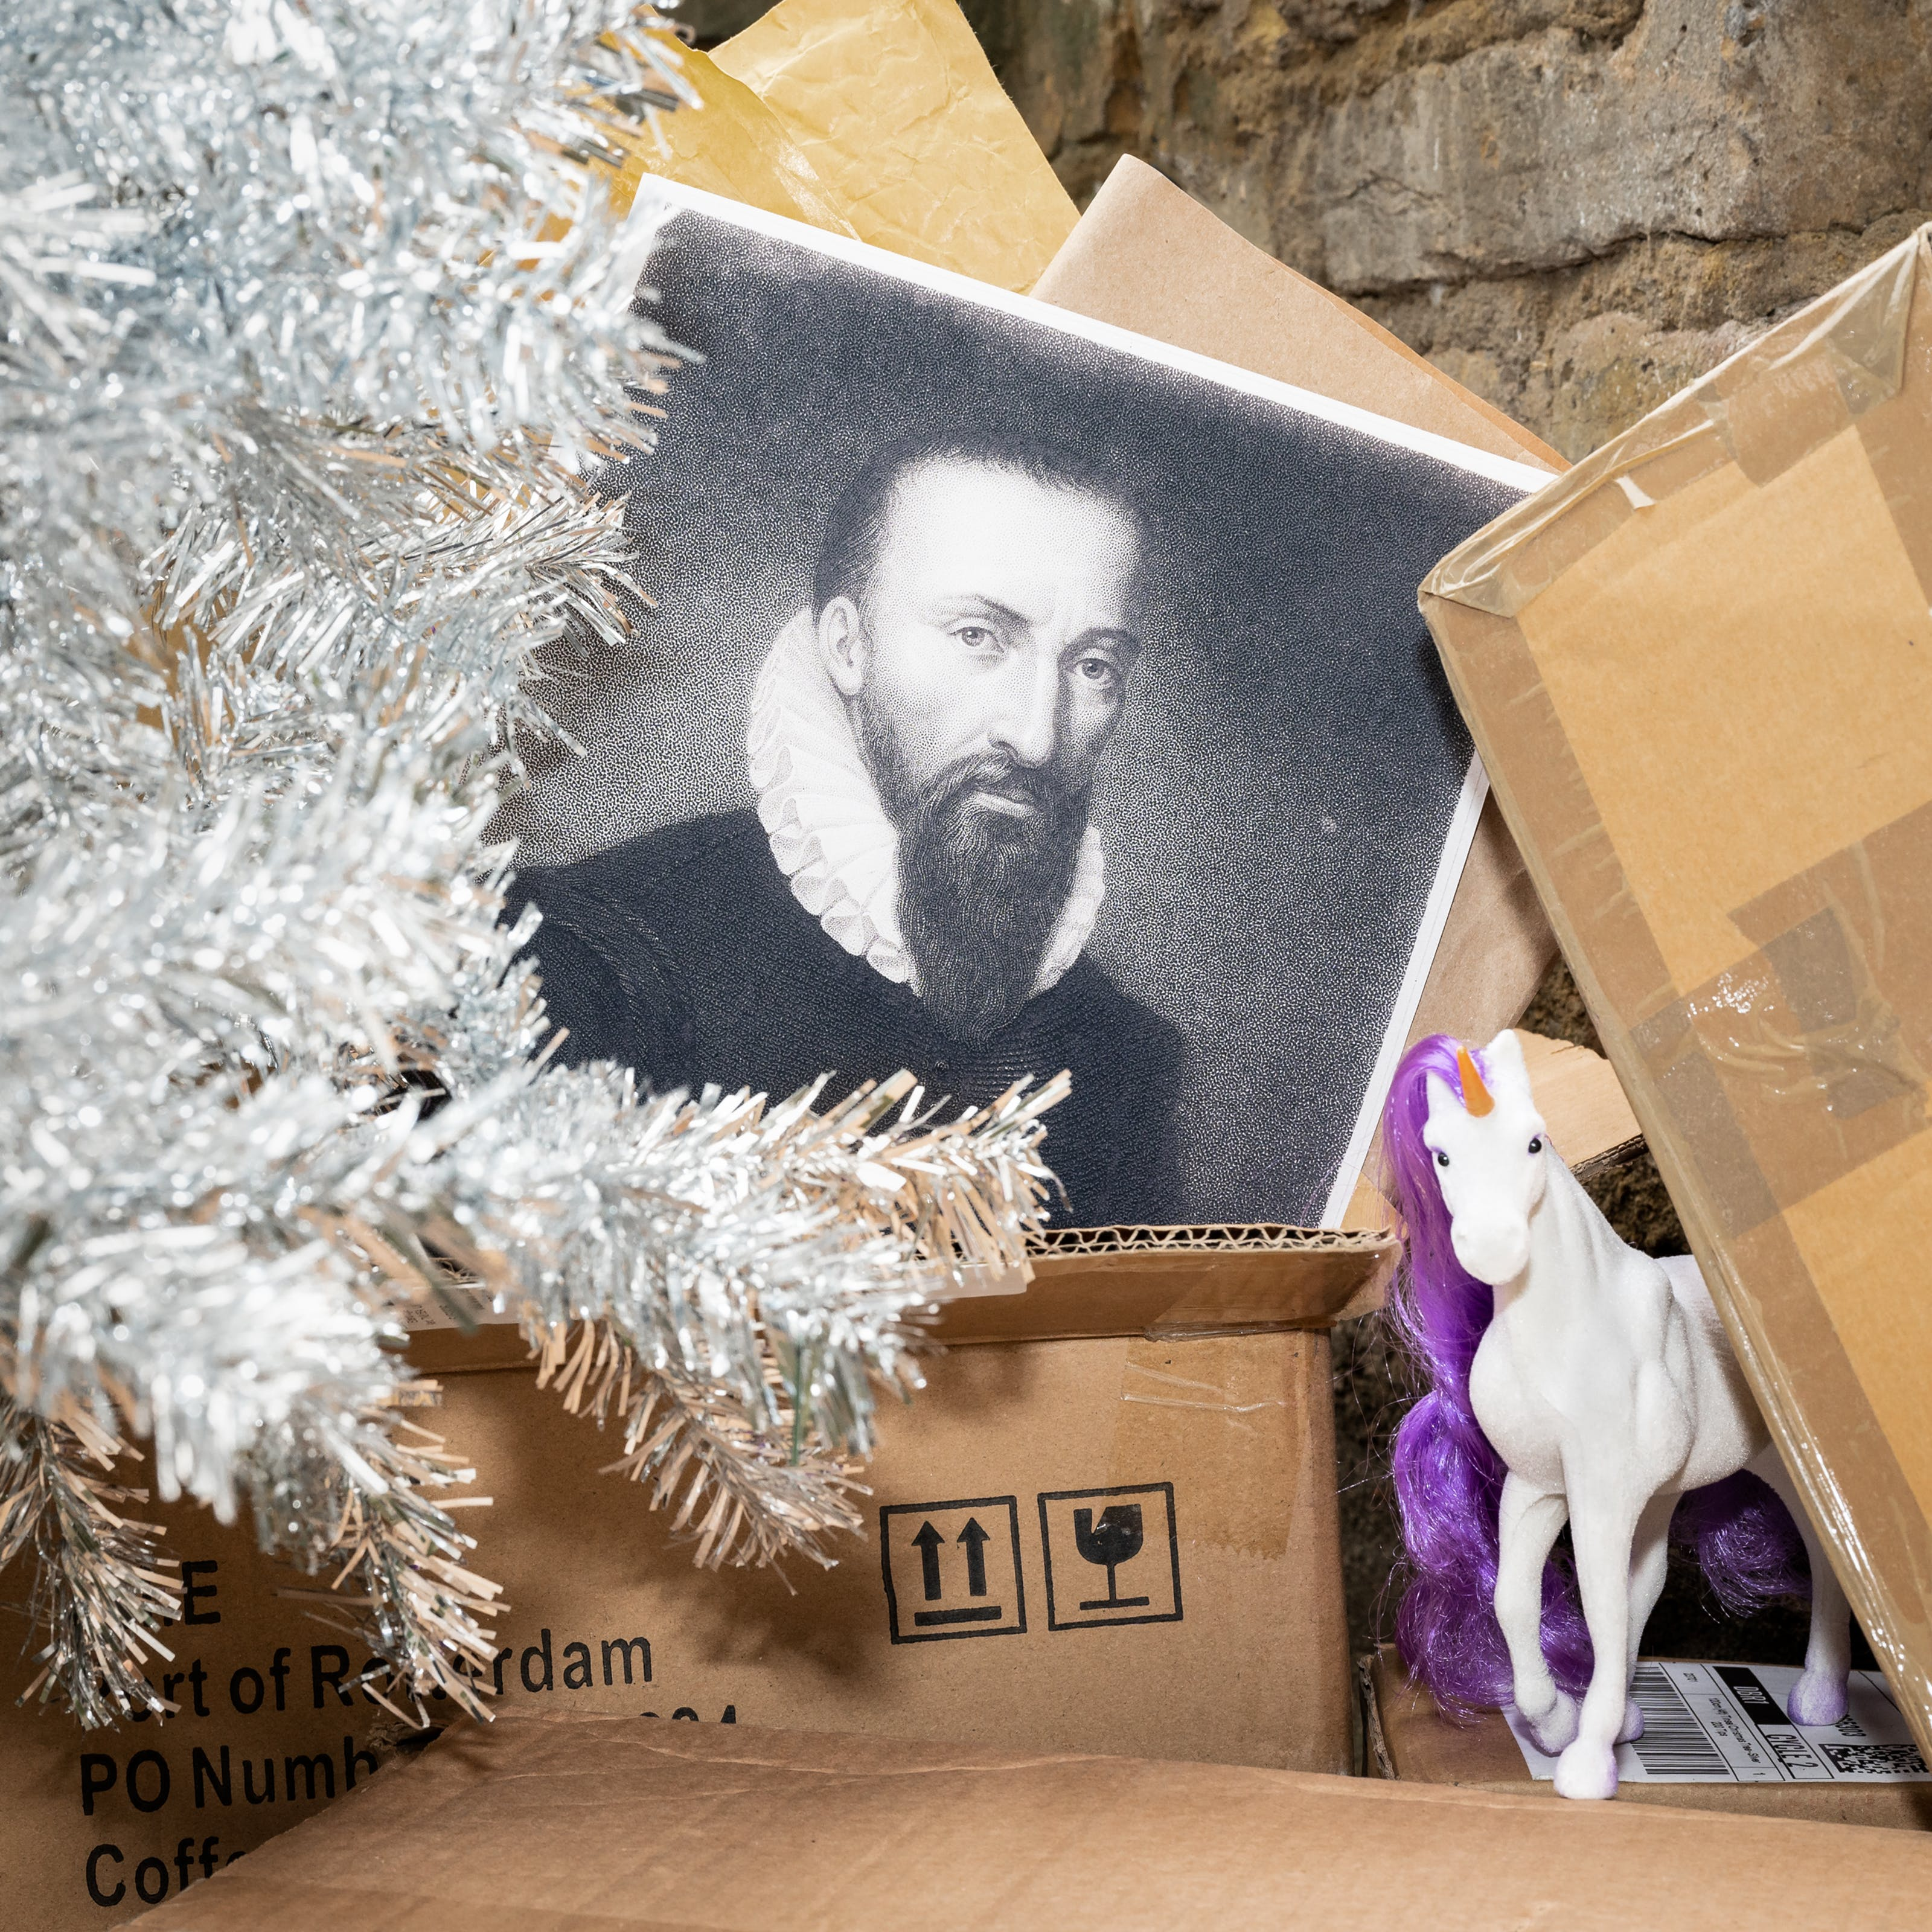 Photograph of a pile of brown cardboard boxes quite closeup. Next to the boxes on the left is part of a silver tinselled Christmas tree, bare of decorations. Sticking out of one of the cardboard boxes is a balck and white print of a bearded mad with a ruff from the 16th century. One the right hand side, appearing from behind a box is a white plastic unicorn figurine with an orange horn and a purple mane.